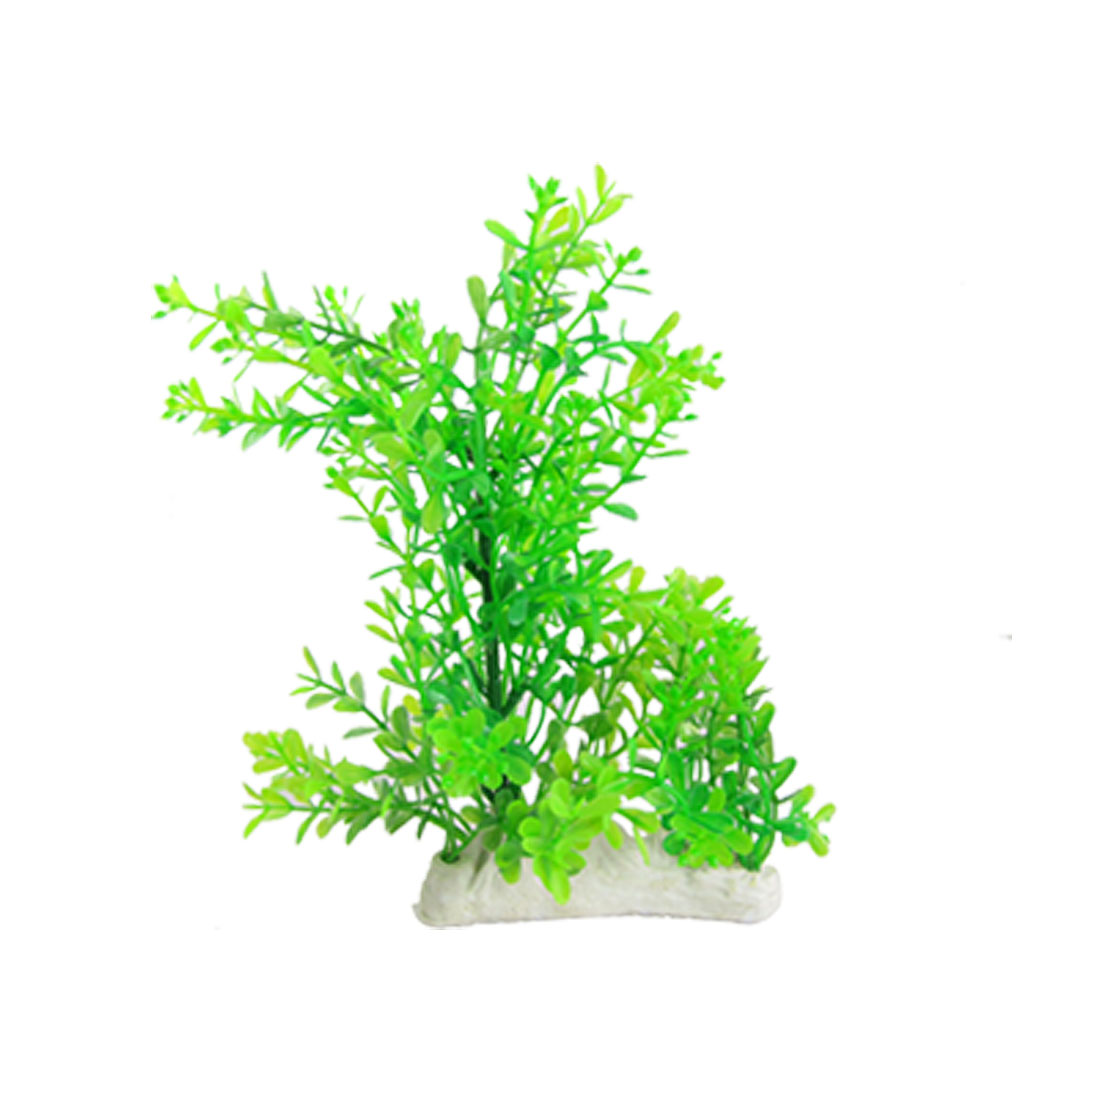 Fish Tank Plastic Green Water Grass Ceramic Base Decoration